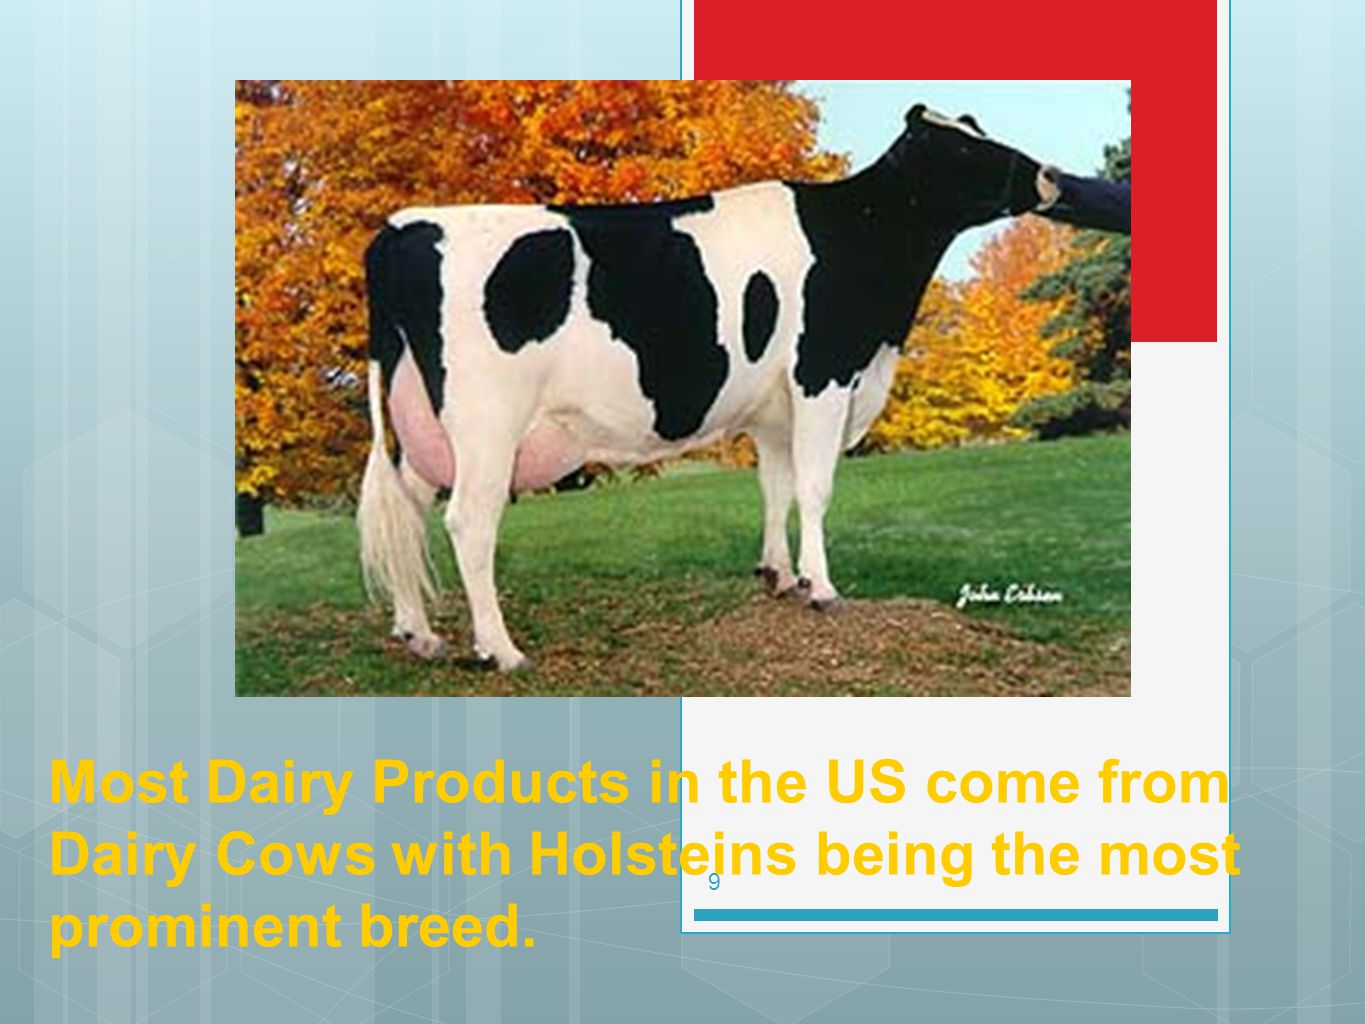 Most Dairy Products in the US come from Dairy Cows with Holsteins being the most prominent breed.